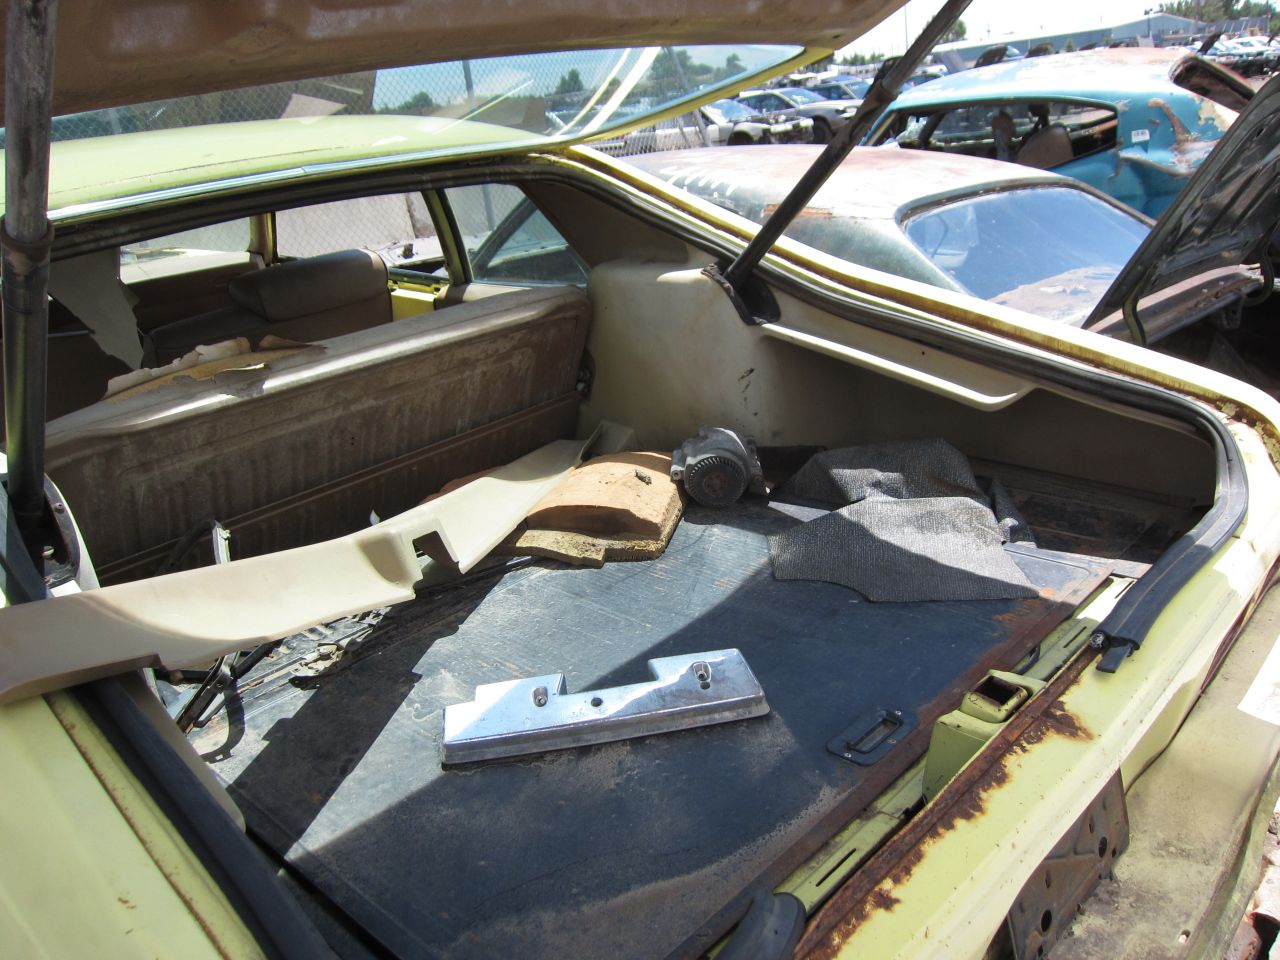 Junkyard Find: 1973 Chevrolet Nova Hatchback - The Truth About Cars